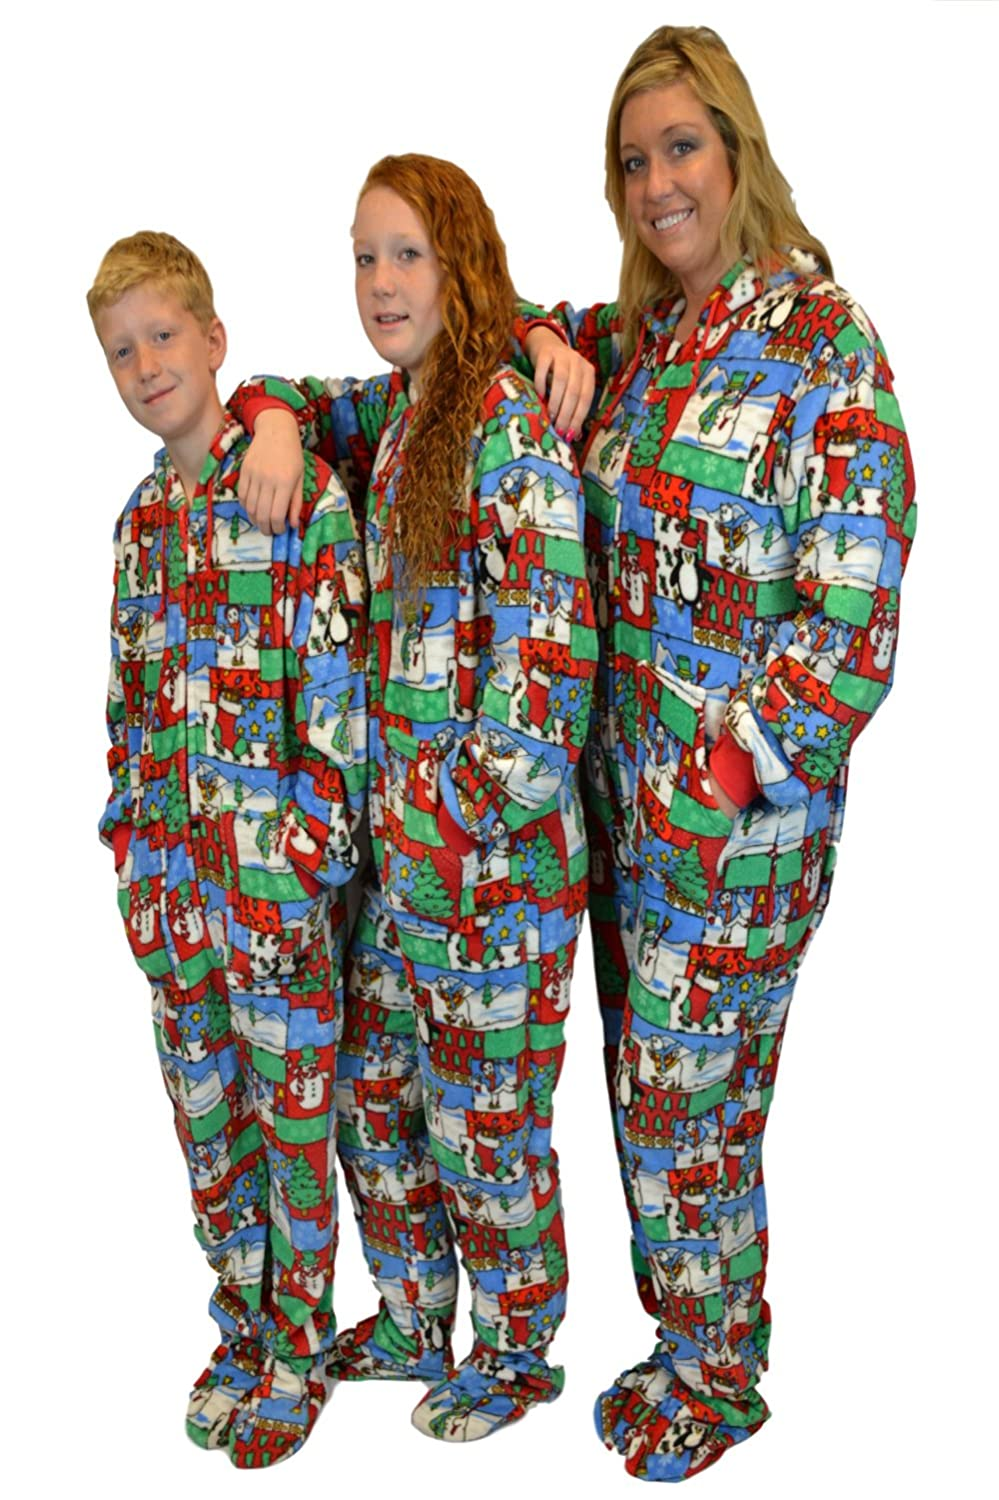 fa45995f9a63 Amazon.com  Christmas Fun Plush Hoodie Footed Onesie Pajamas Loungewear for  Men   Women  Clothing